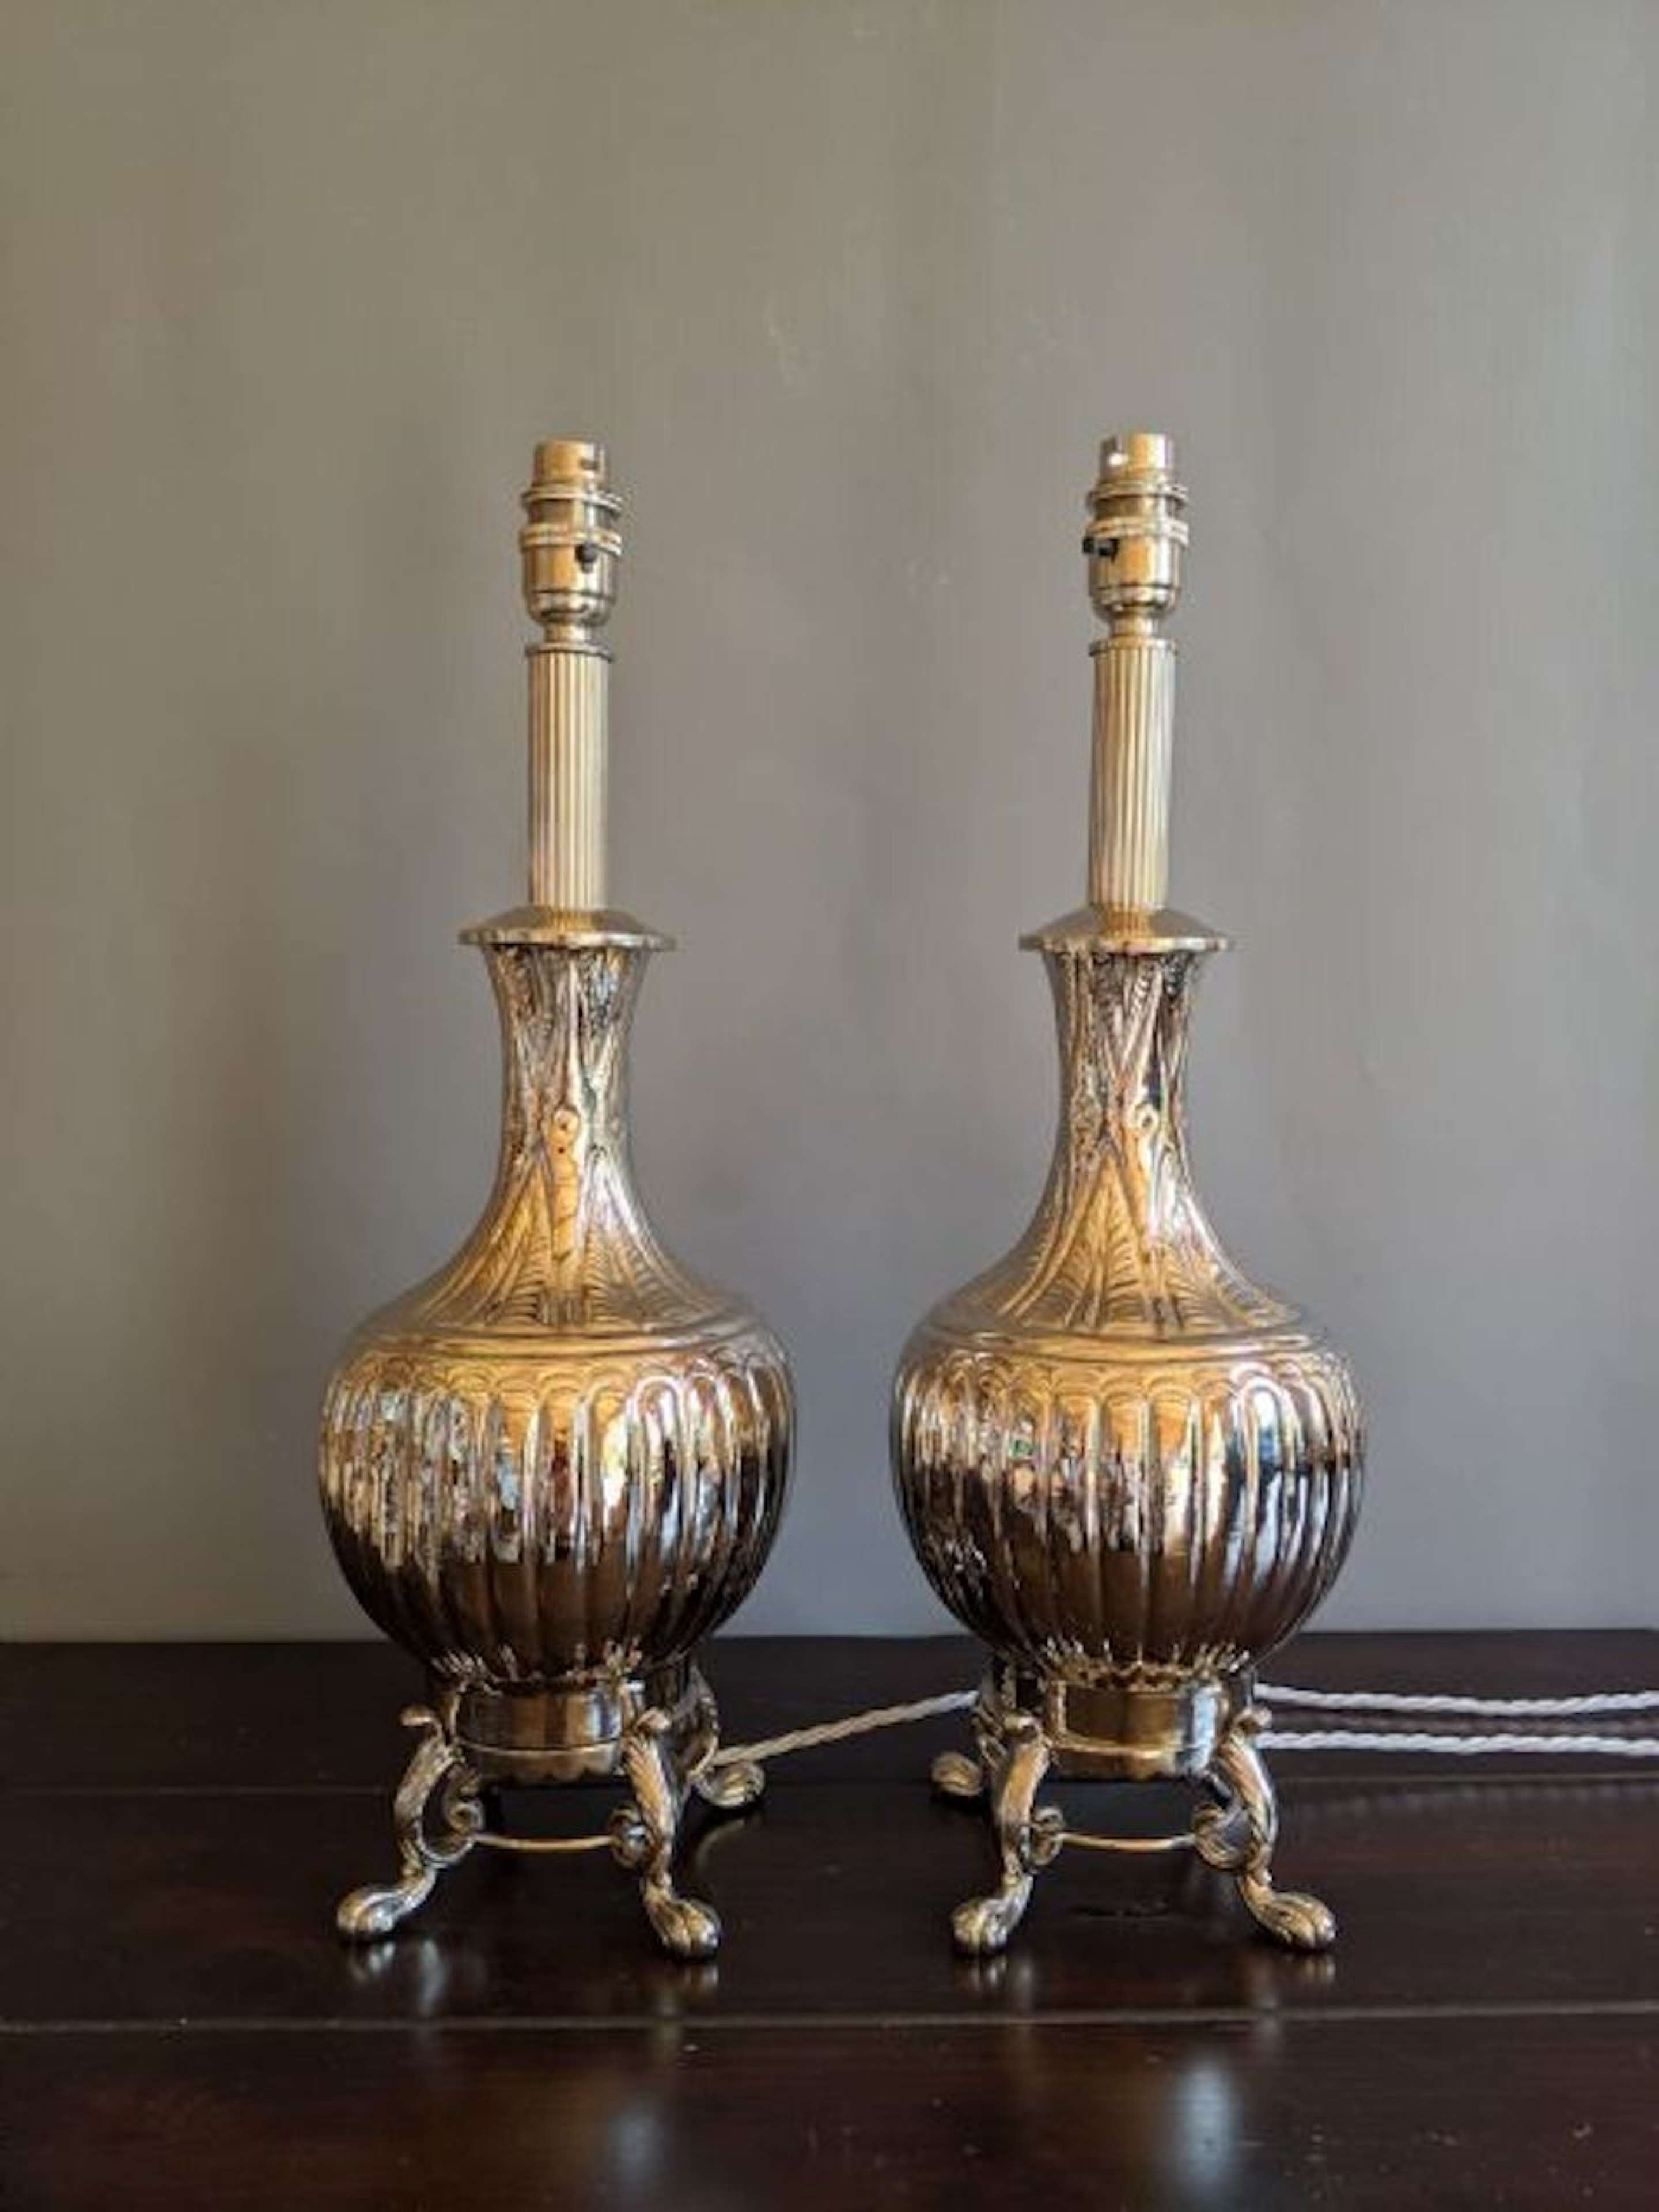 Exceptional pair of Nickel Plated Table Lamps